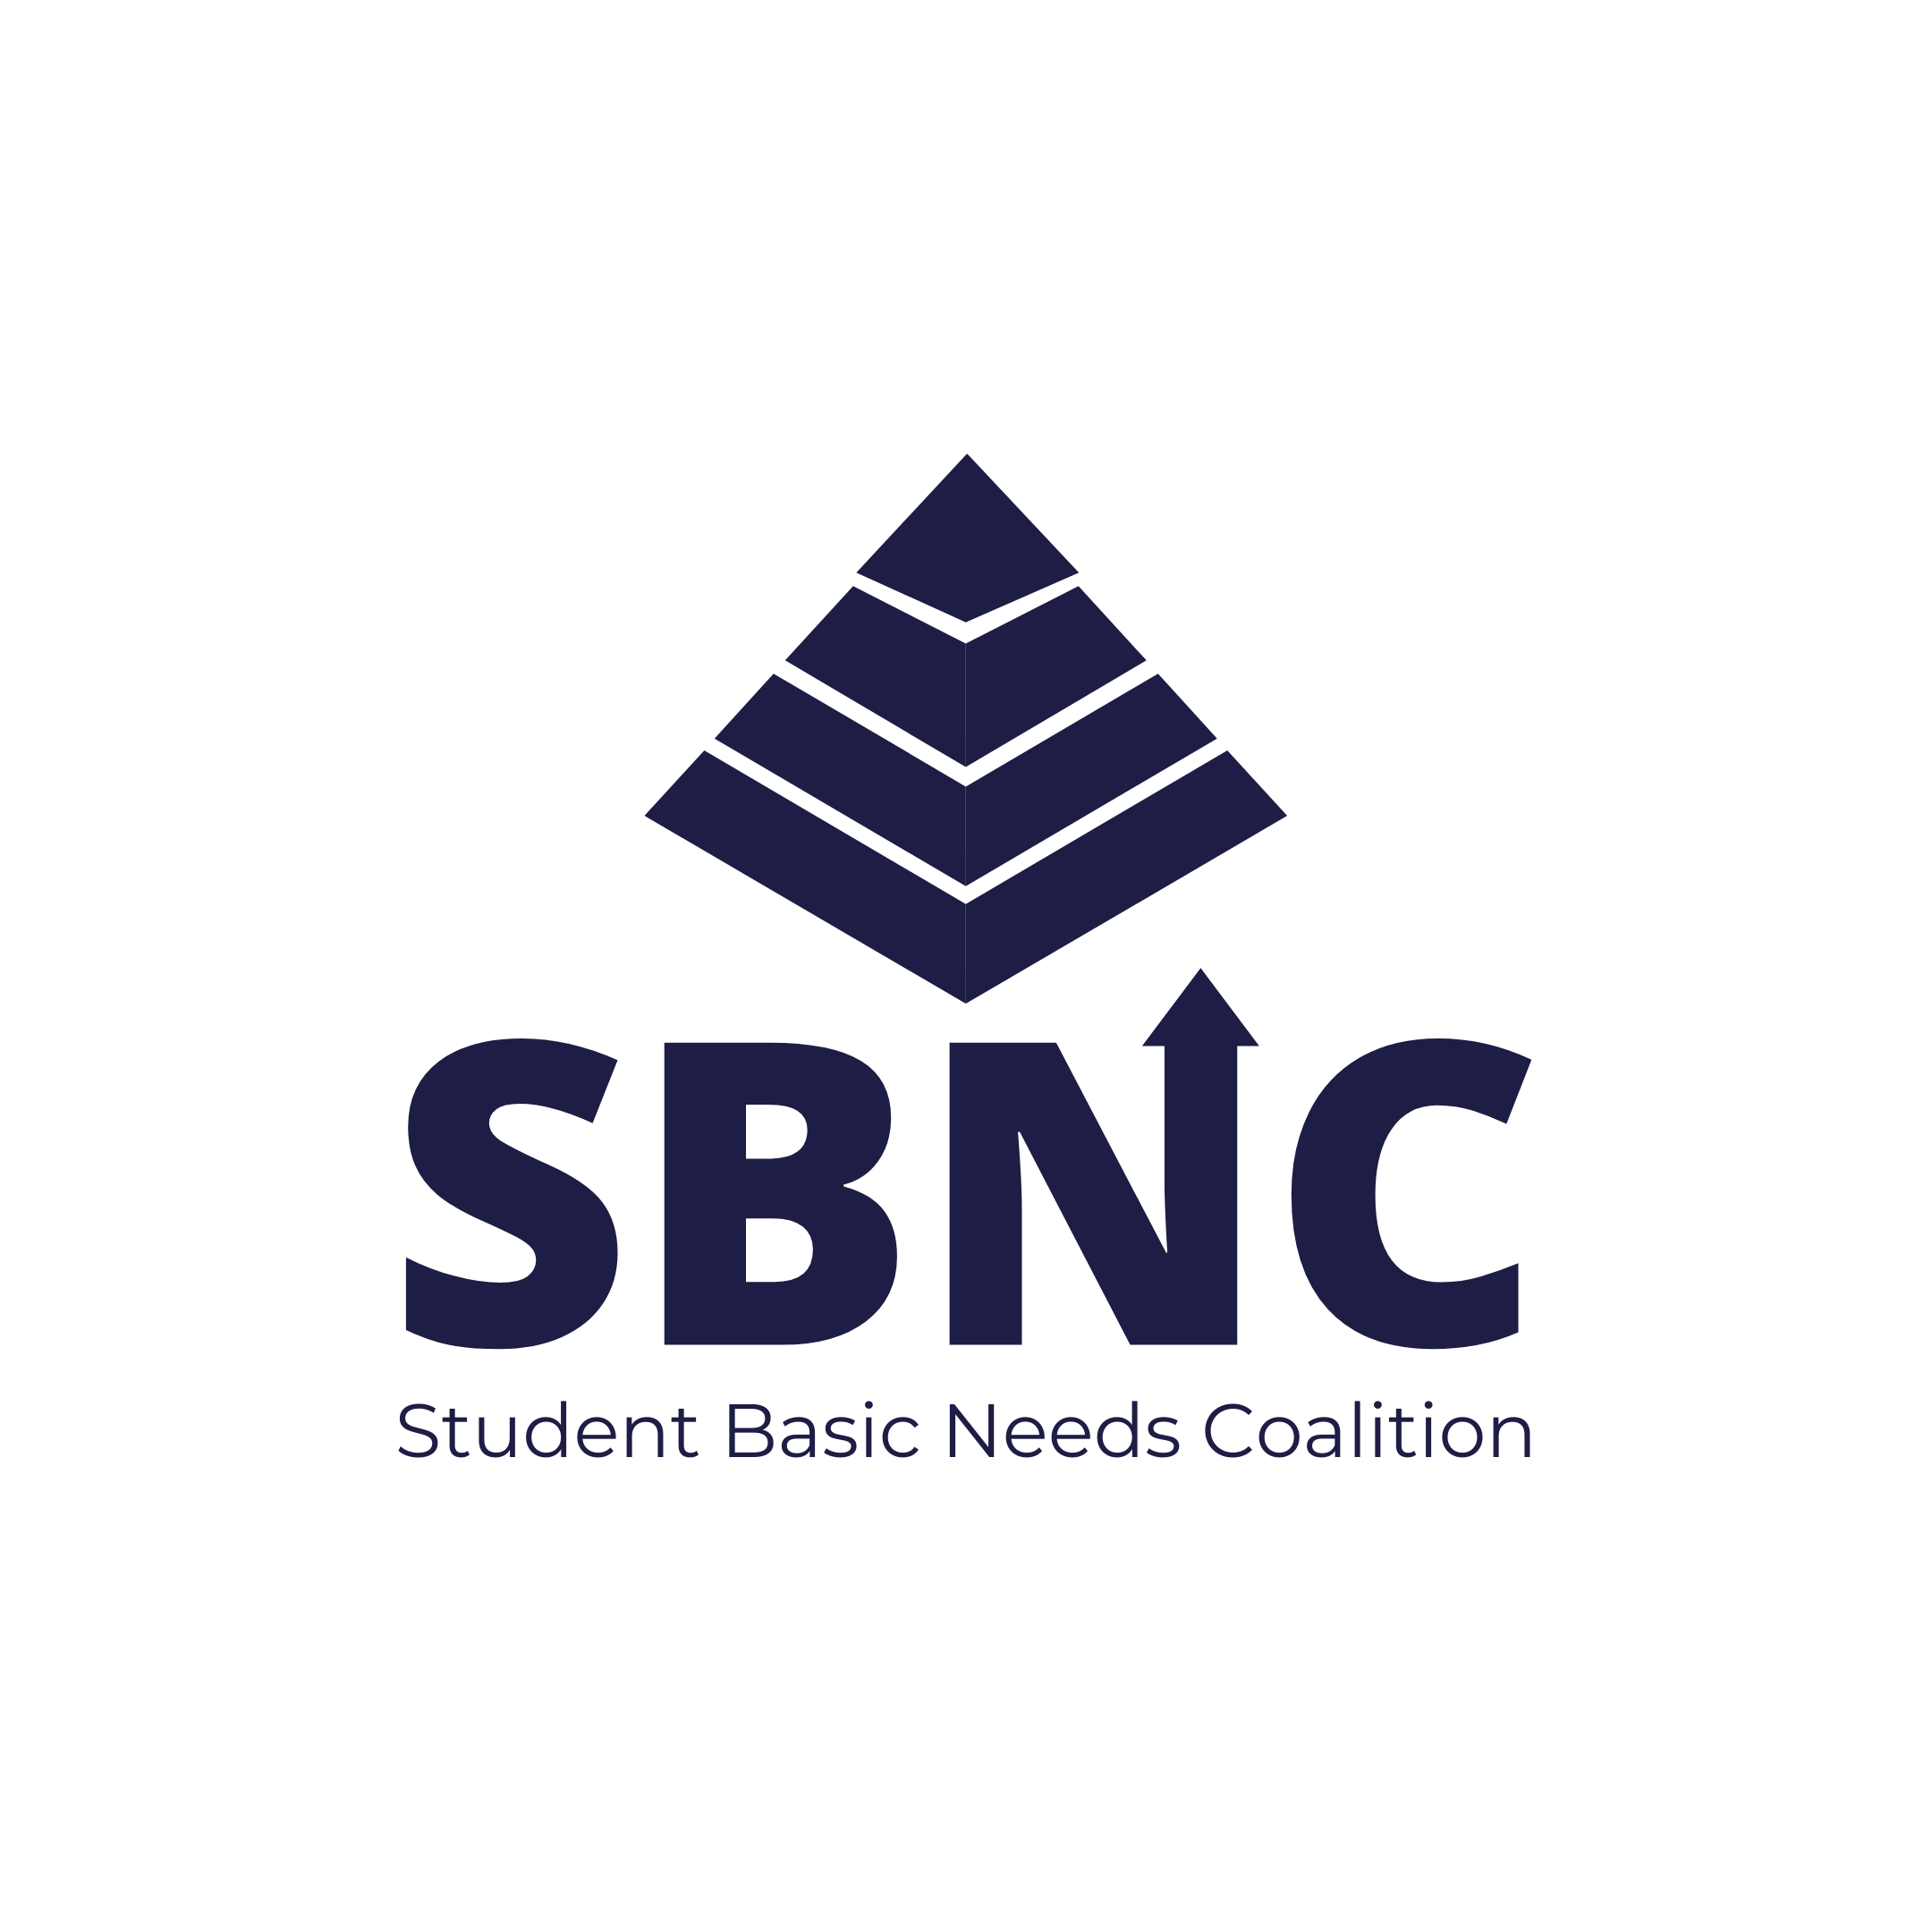 Student Basic Needs Coalition